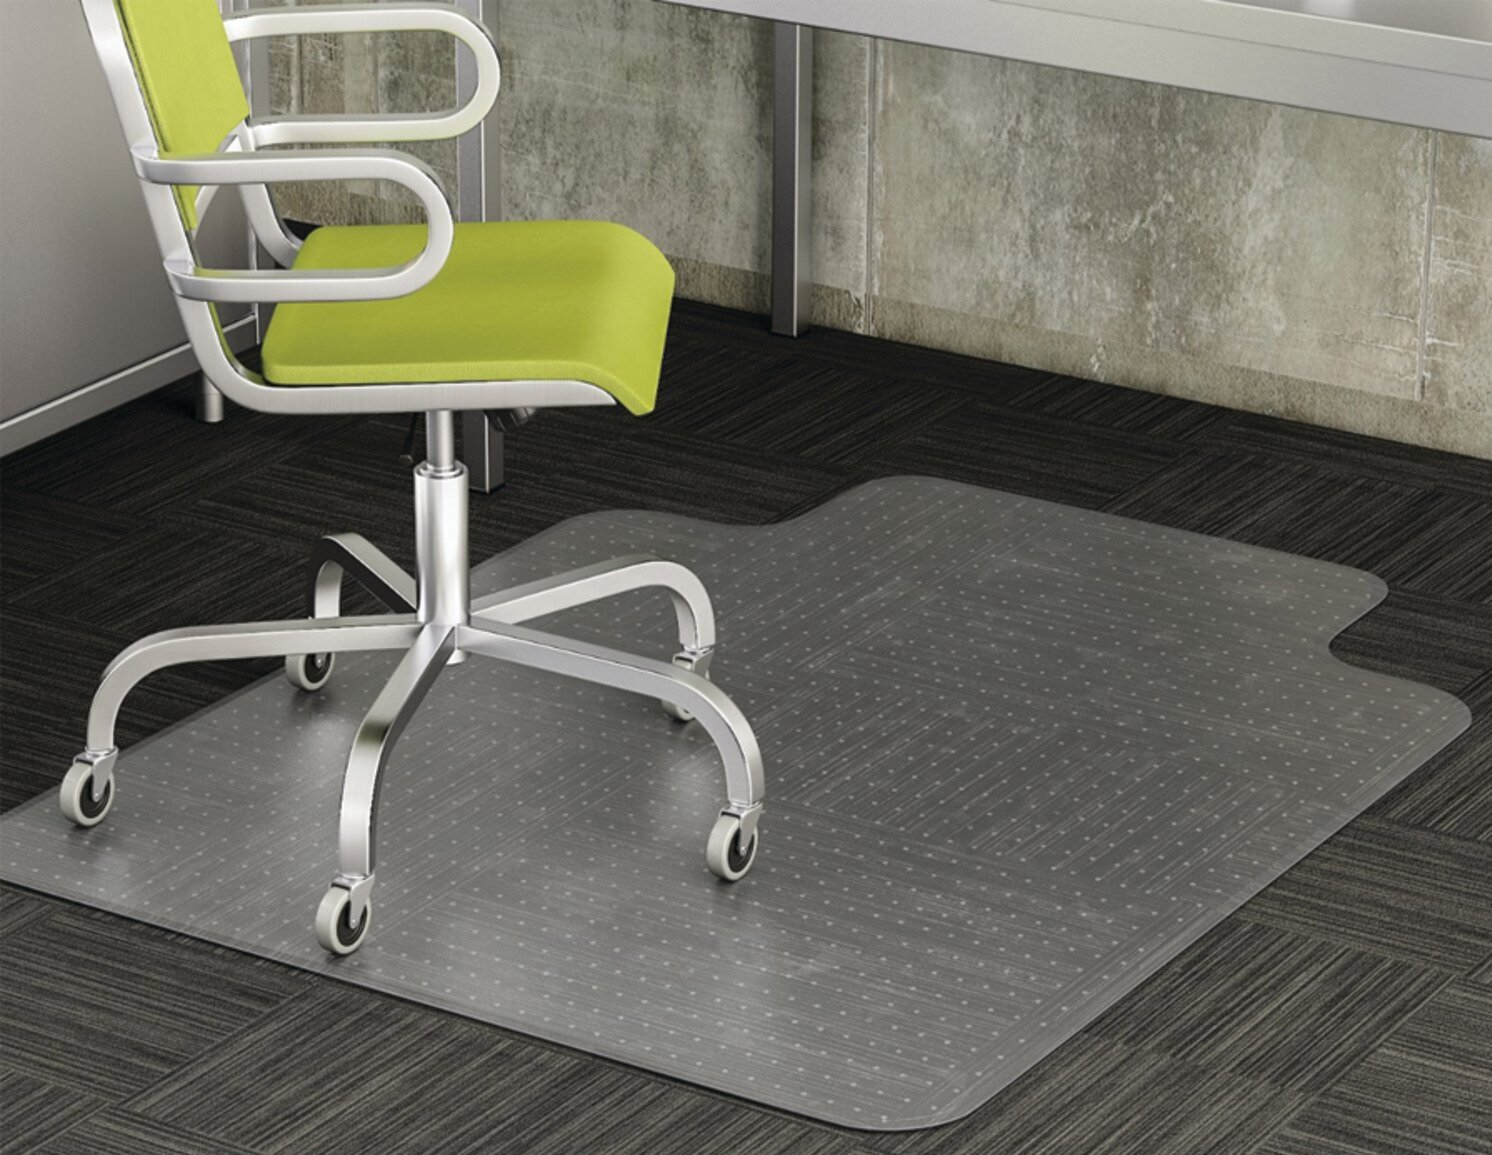 bevelet-ofiice-chair-mat